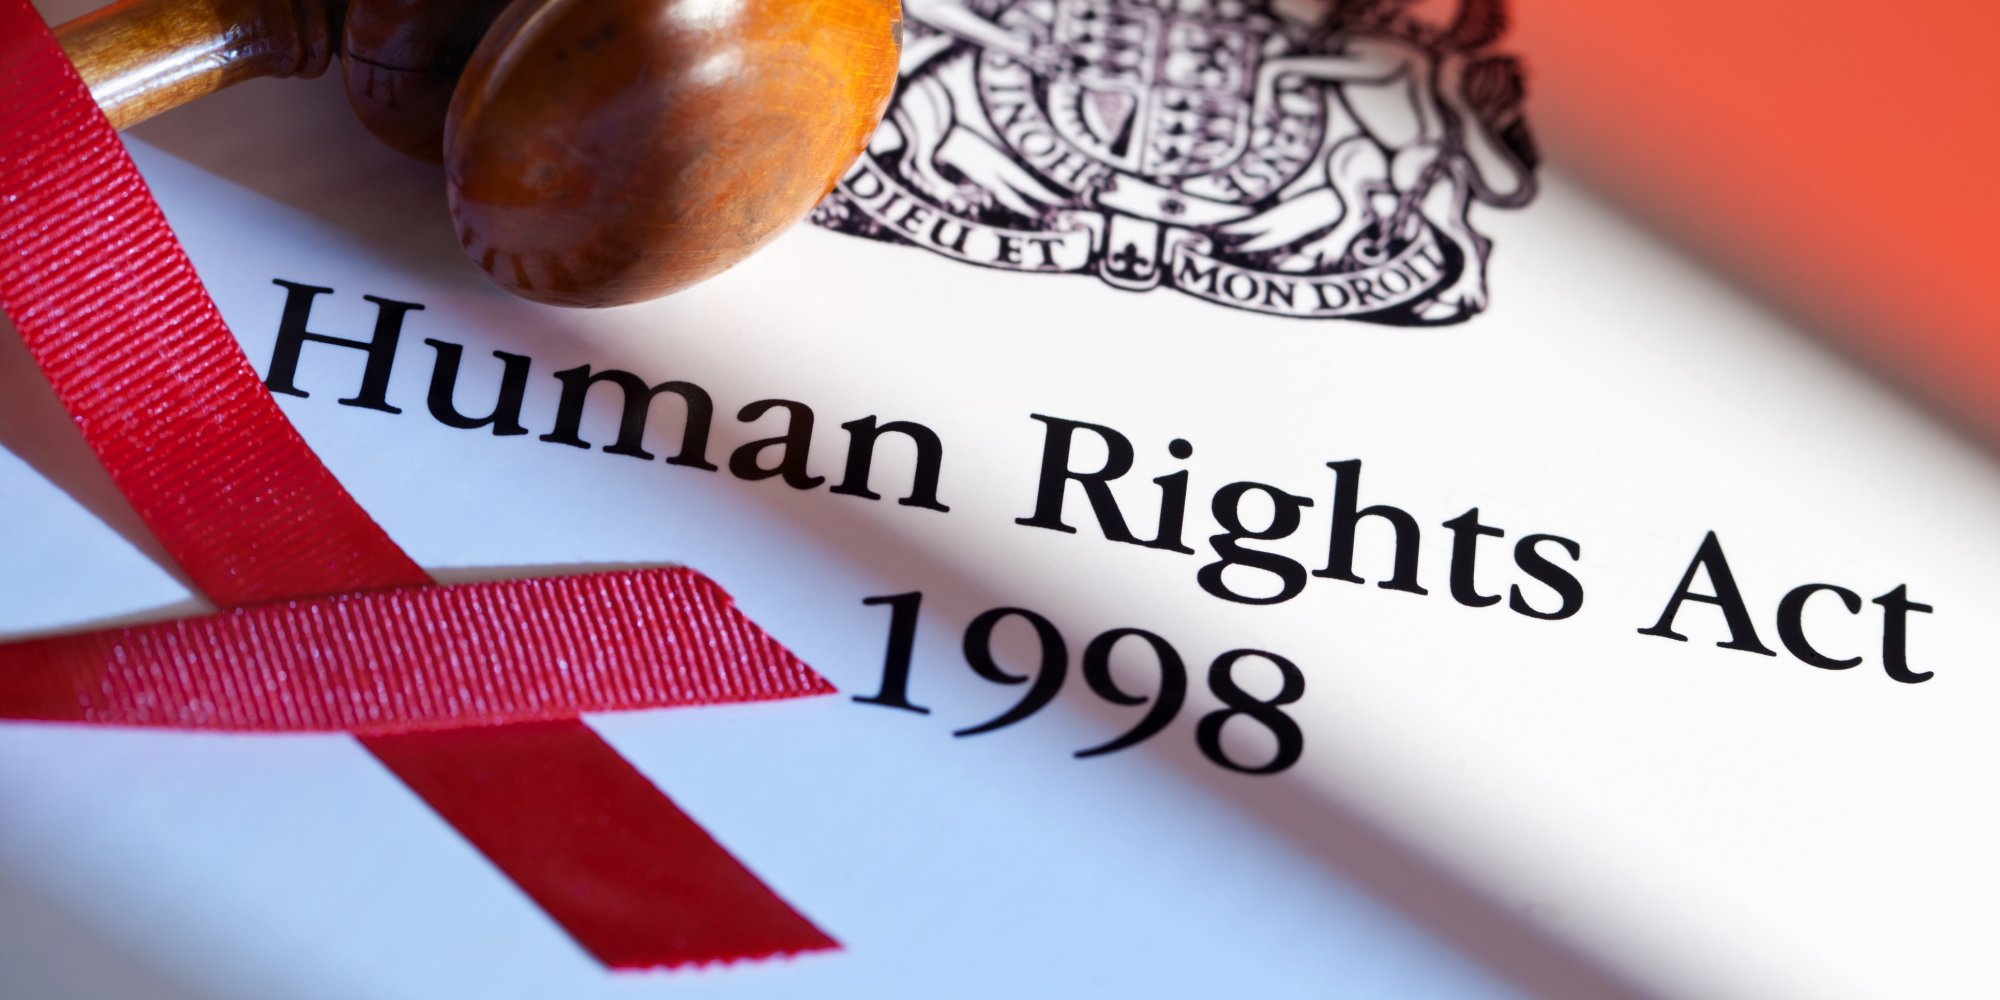 human right Human rights are moral principles or norms that describe certain standards of human behaviour and are regularly protected as natural and legal rights in municipal and international law.